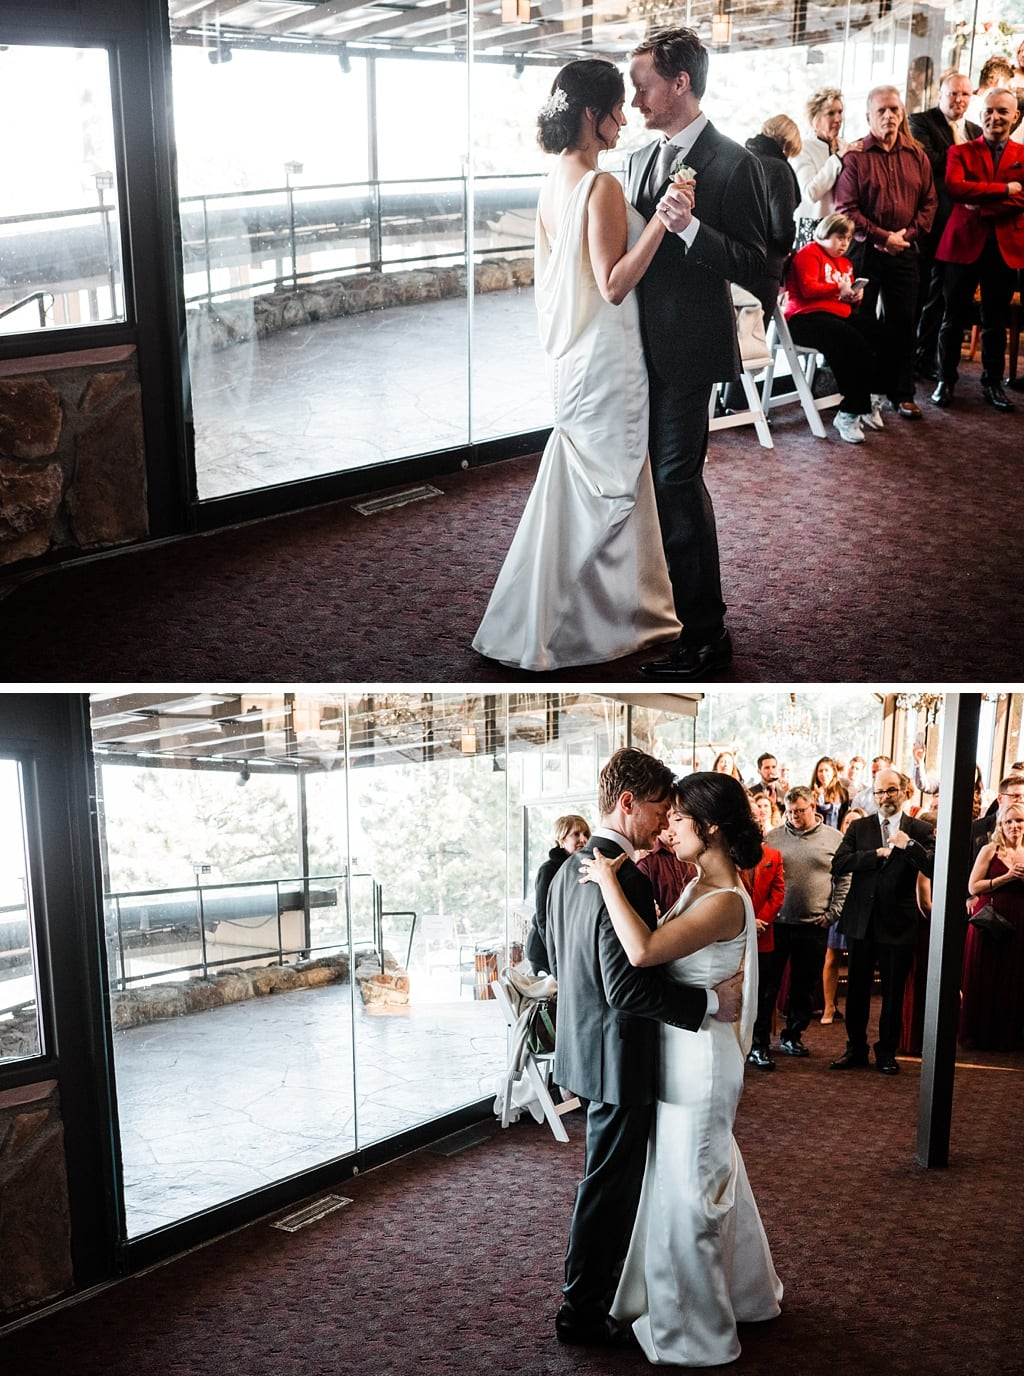 Bride and groom first dance at Flagstaff House Restaurant in Boulder, Colorado